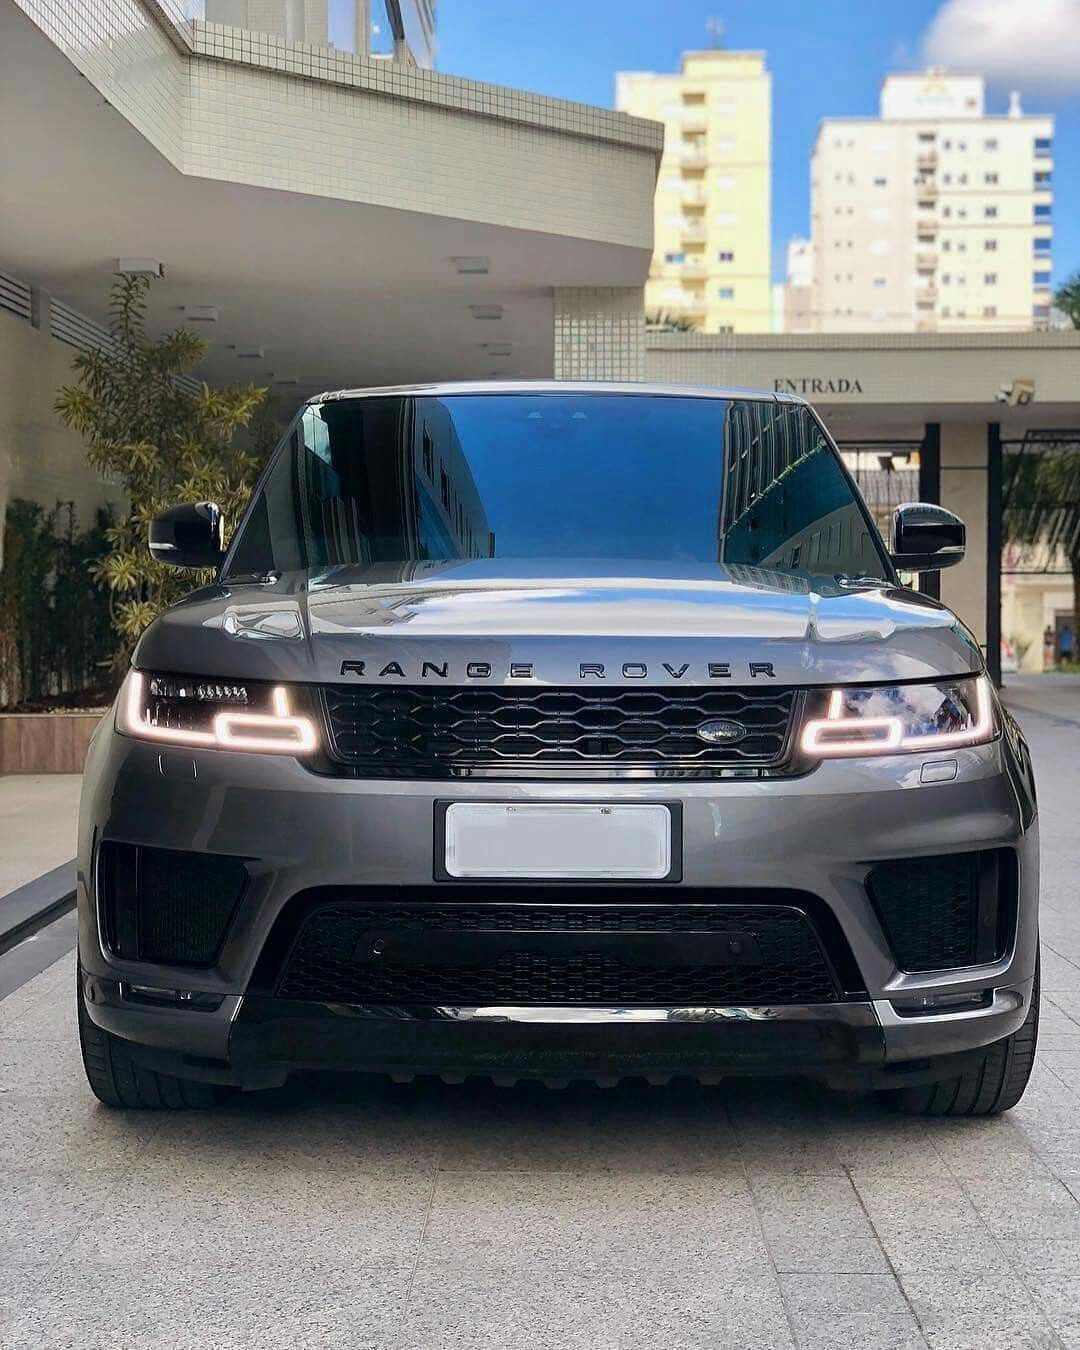 Pin by TheGhost on 4x4 in 2020 Range rover sport, Range